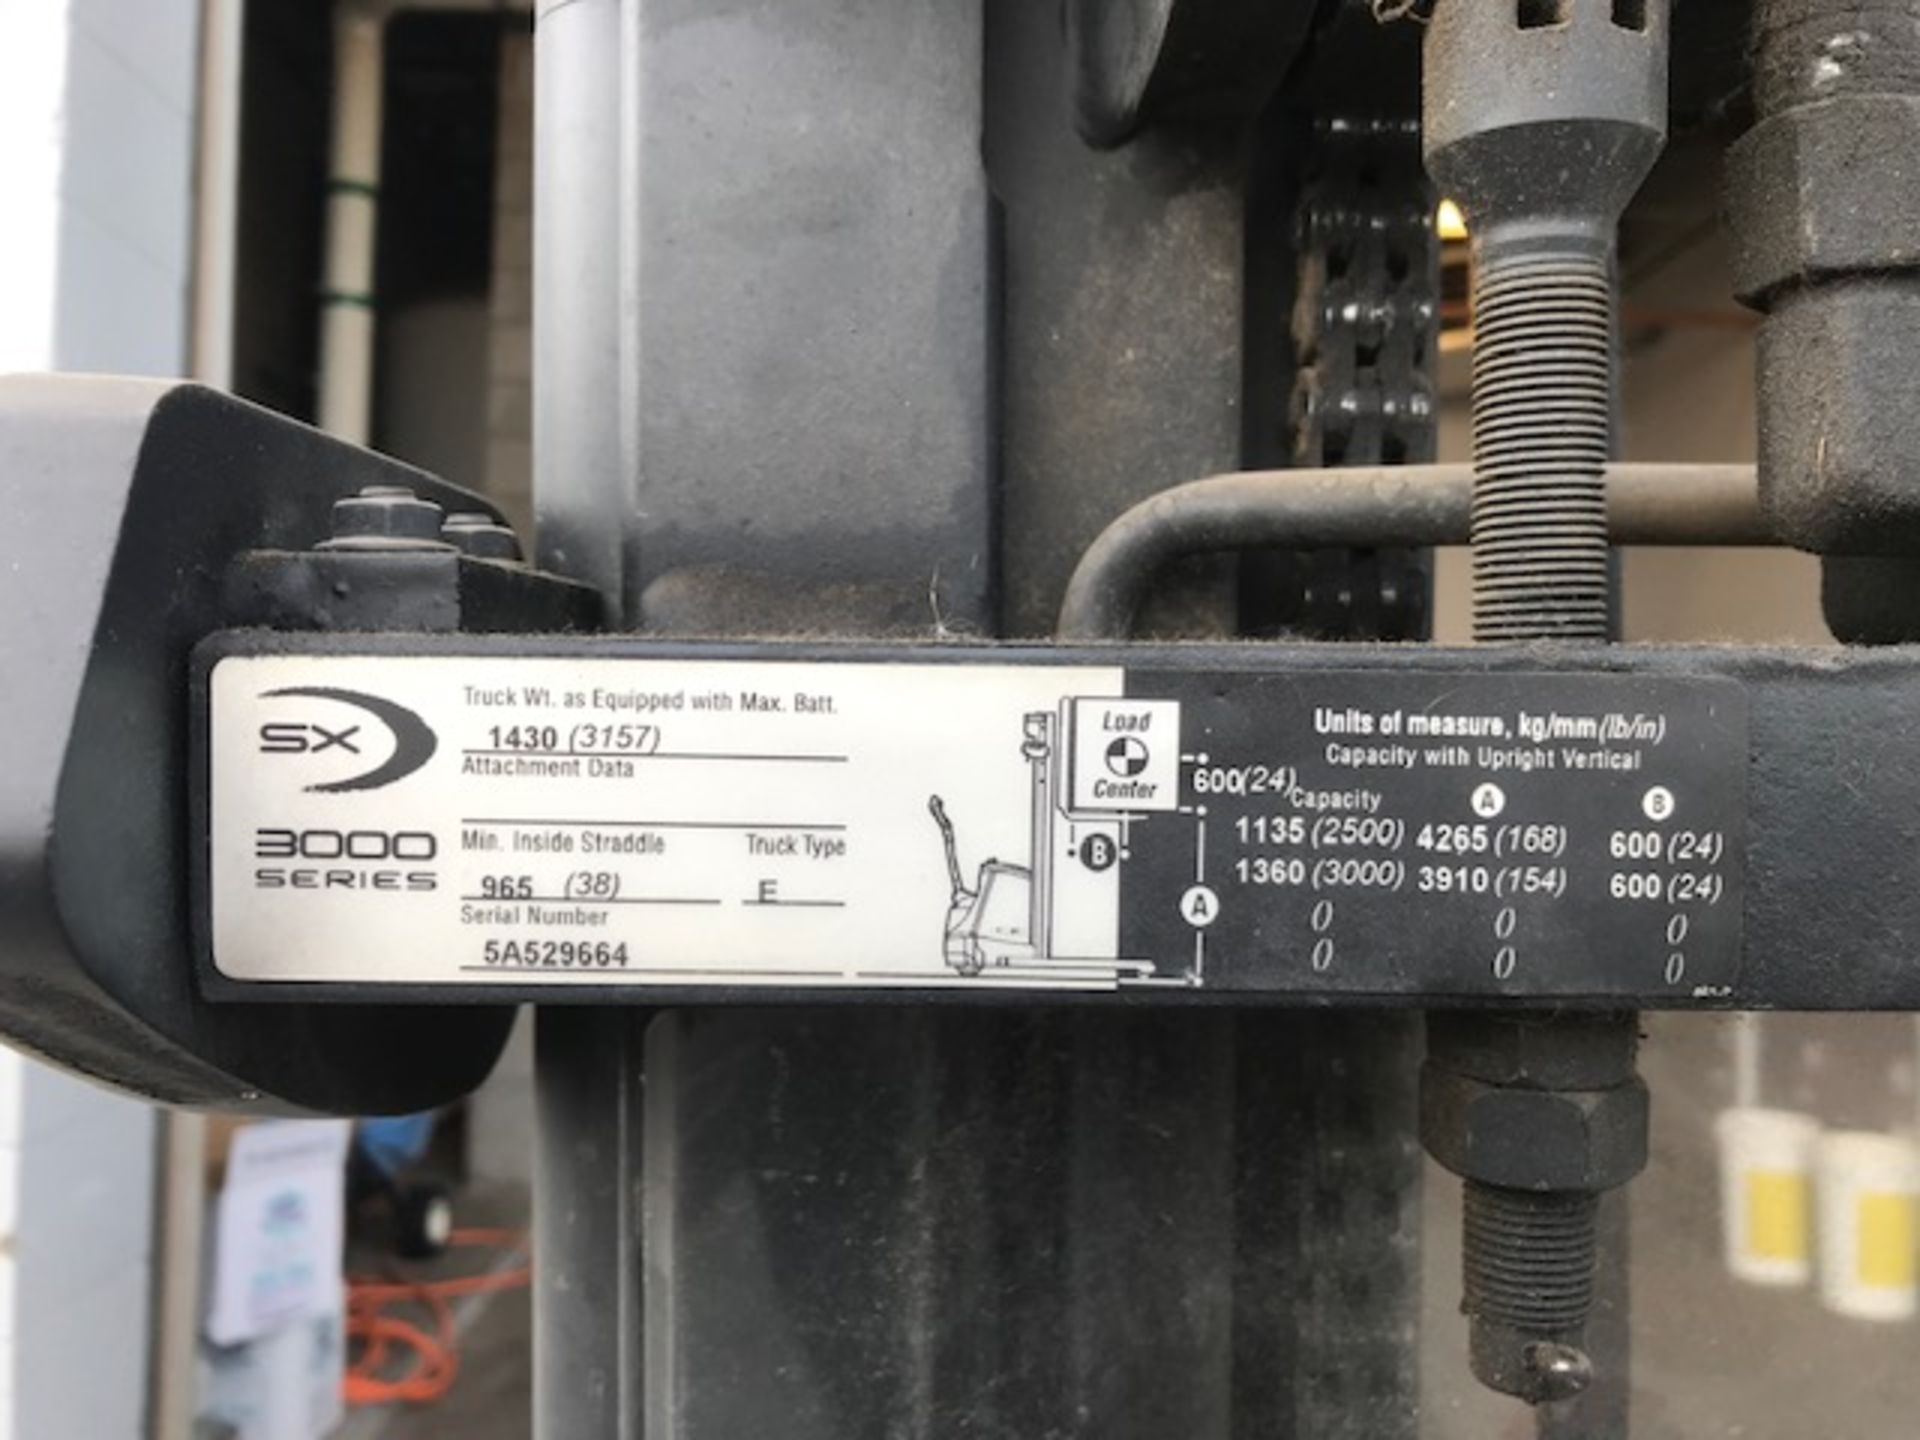 Electric Pallet Jack - Crown Lifttruck - 3000 Series, Serial# 5A529664, Model# SX3000-30, 24V, 167.2 - Image 2 of 6